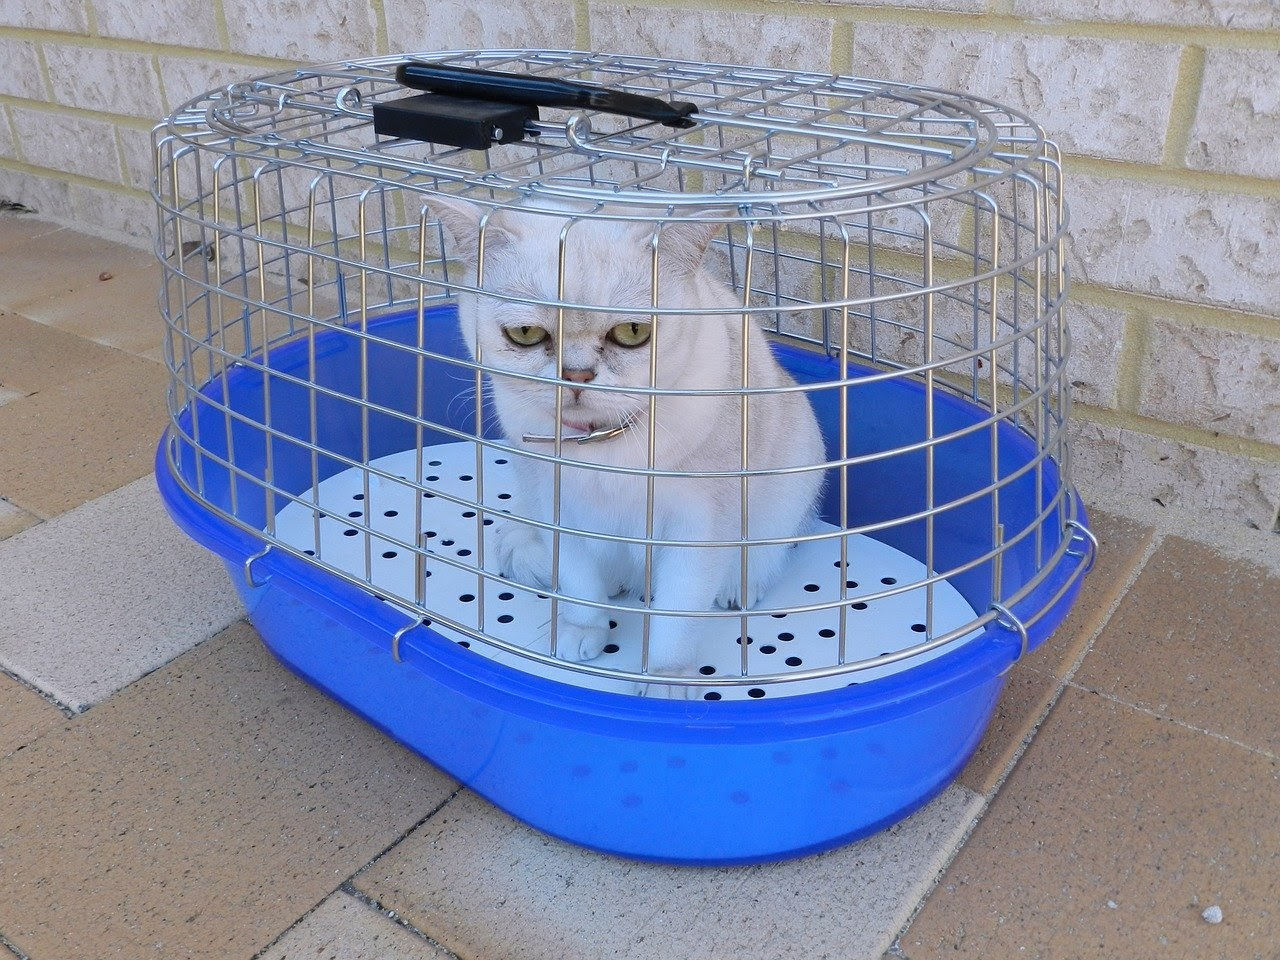 A white cat inside a carrier